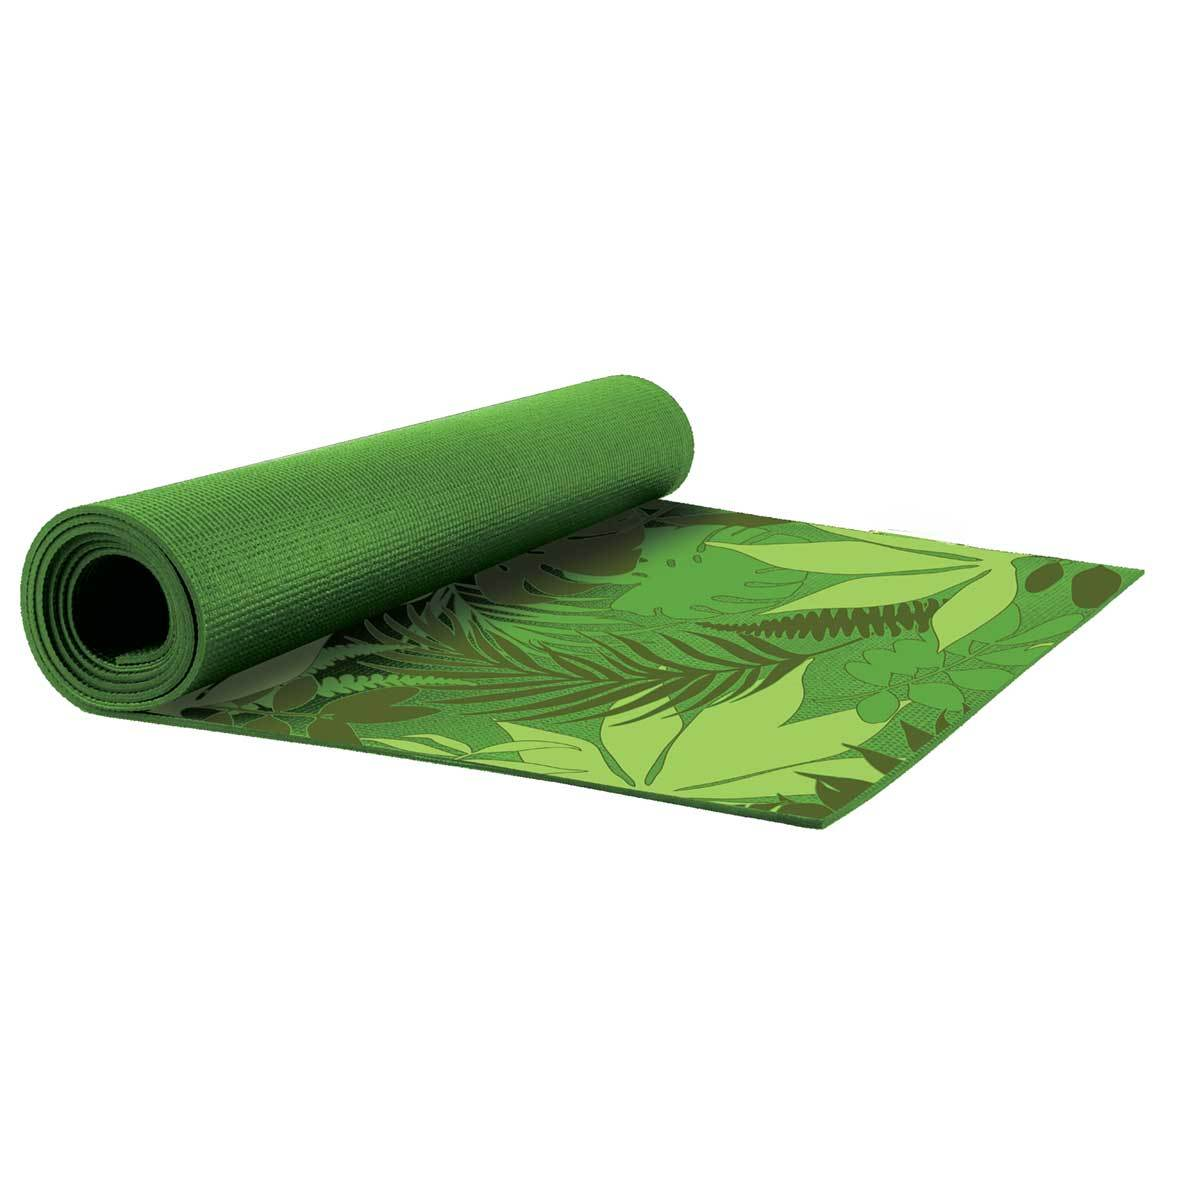 hamsa yoga mat products printed vagabond goods mats